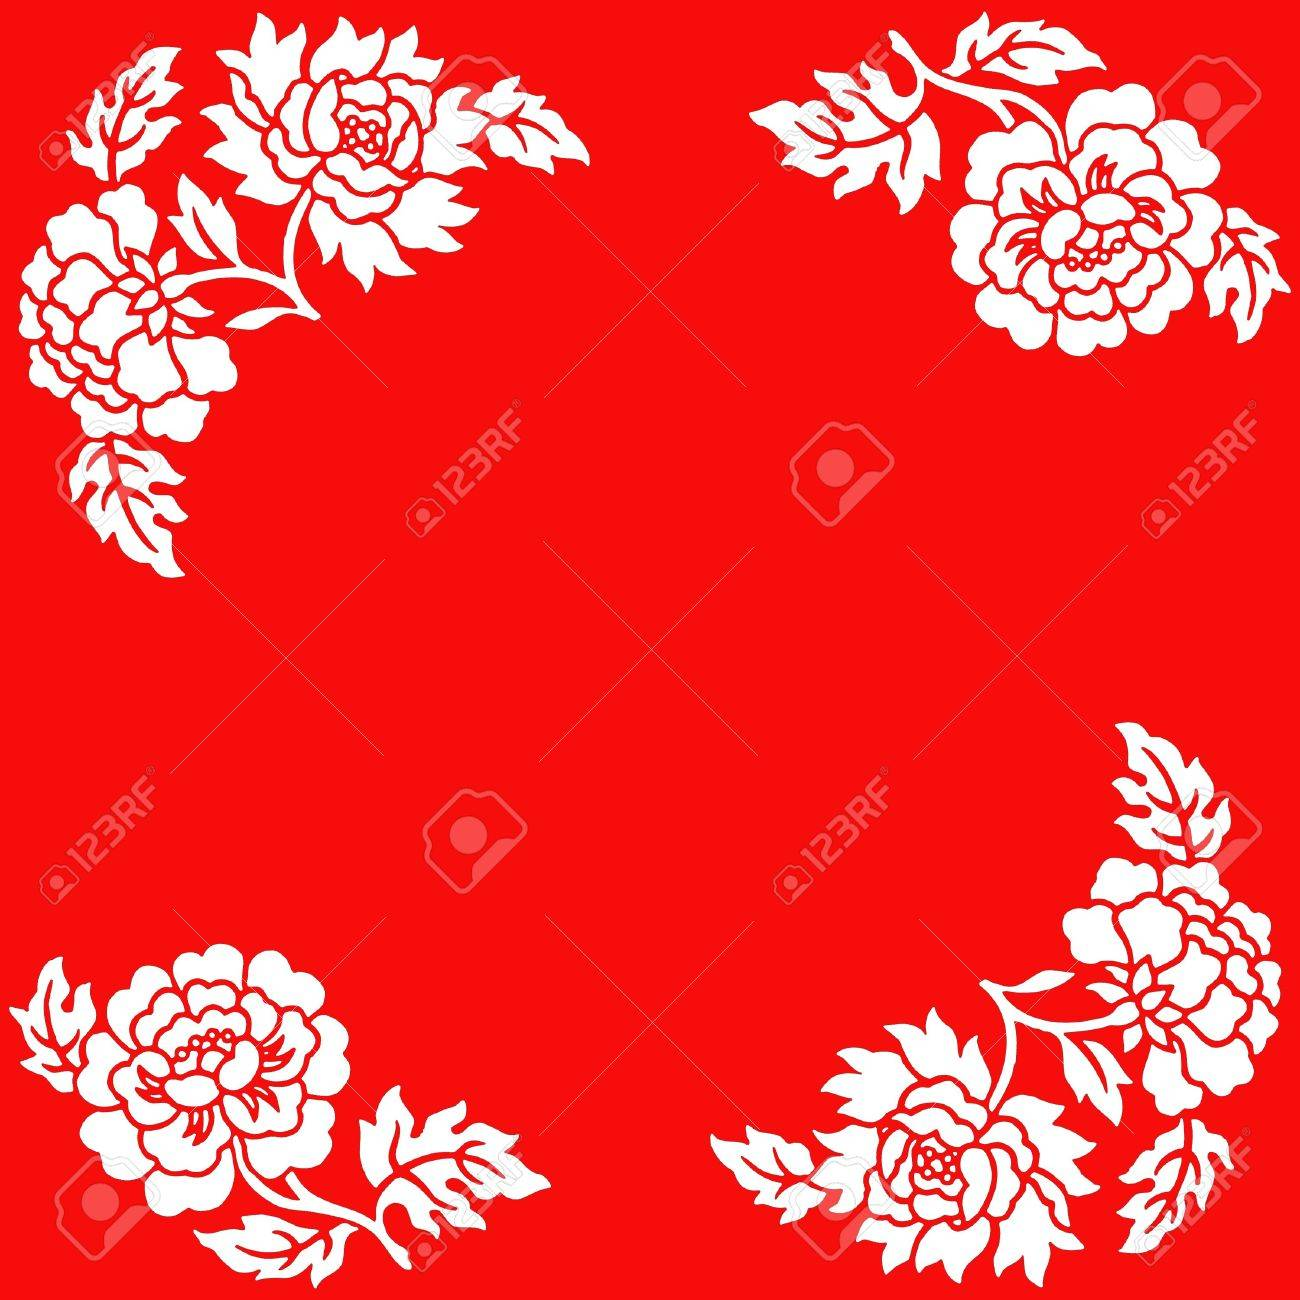 Chinese Paper Cut Of Flowers On Red Background Stock Photo Picture